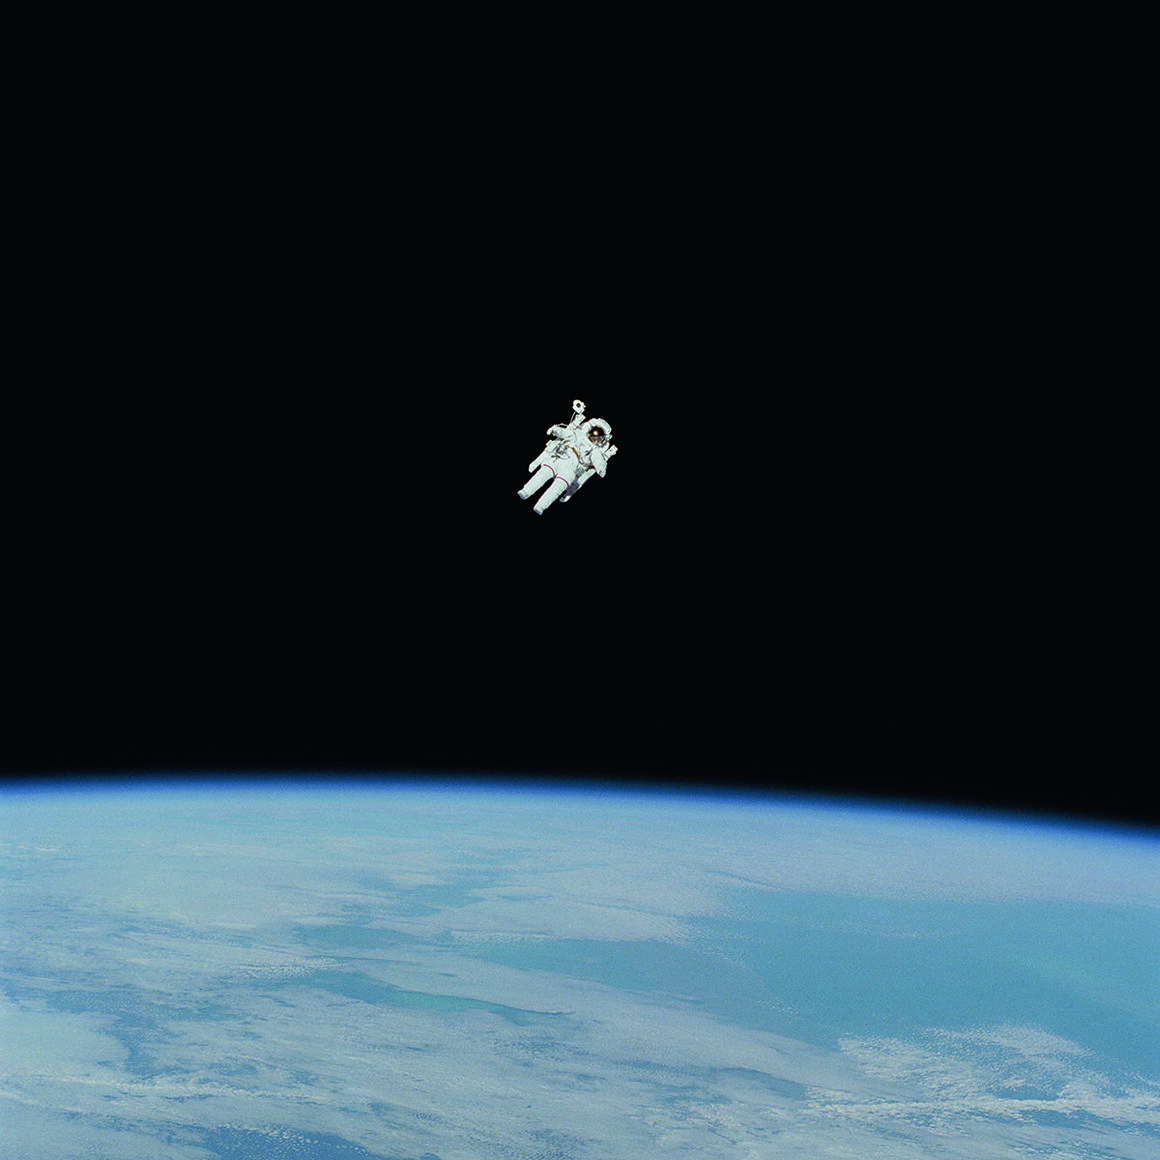 NASA astronaut Bruce McCandless during the first untethered spacewalk in history. Not long afterward, NASA discontinued such spacewalks.